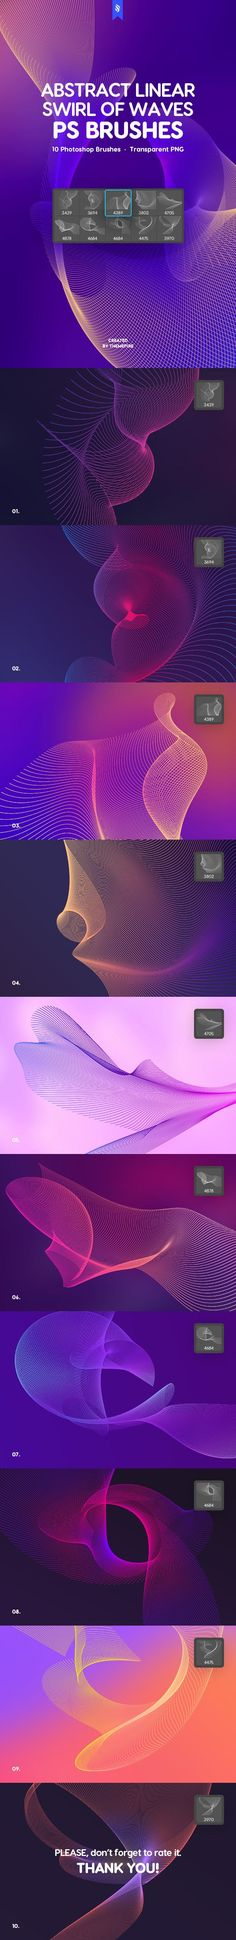 Buy Linear Swirl of Waves Photoshop Brushes by themefire on GraphicRiver. 10 Abstract Wavy Vortex Brushes for Adobe Photoshop The archive consists of 10 high resolution Adobe Photoshop brushe. Advertisement Template, Wave Brush, Digital Wave, Face Profile, Web Design, Graphic Design, Photoshop Brushes, Optical Illusions, Abstract Backgrounds